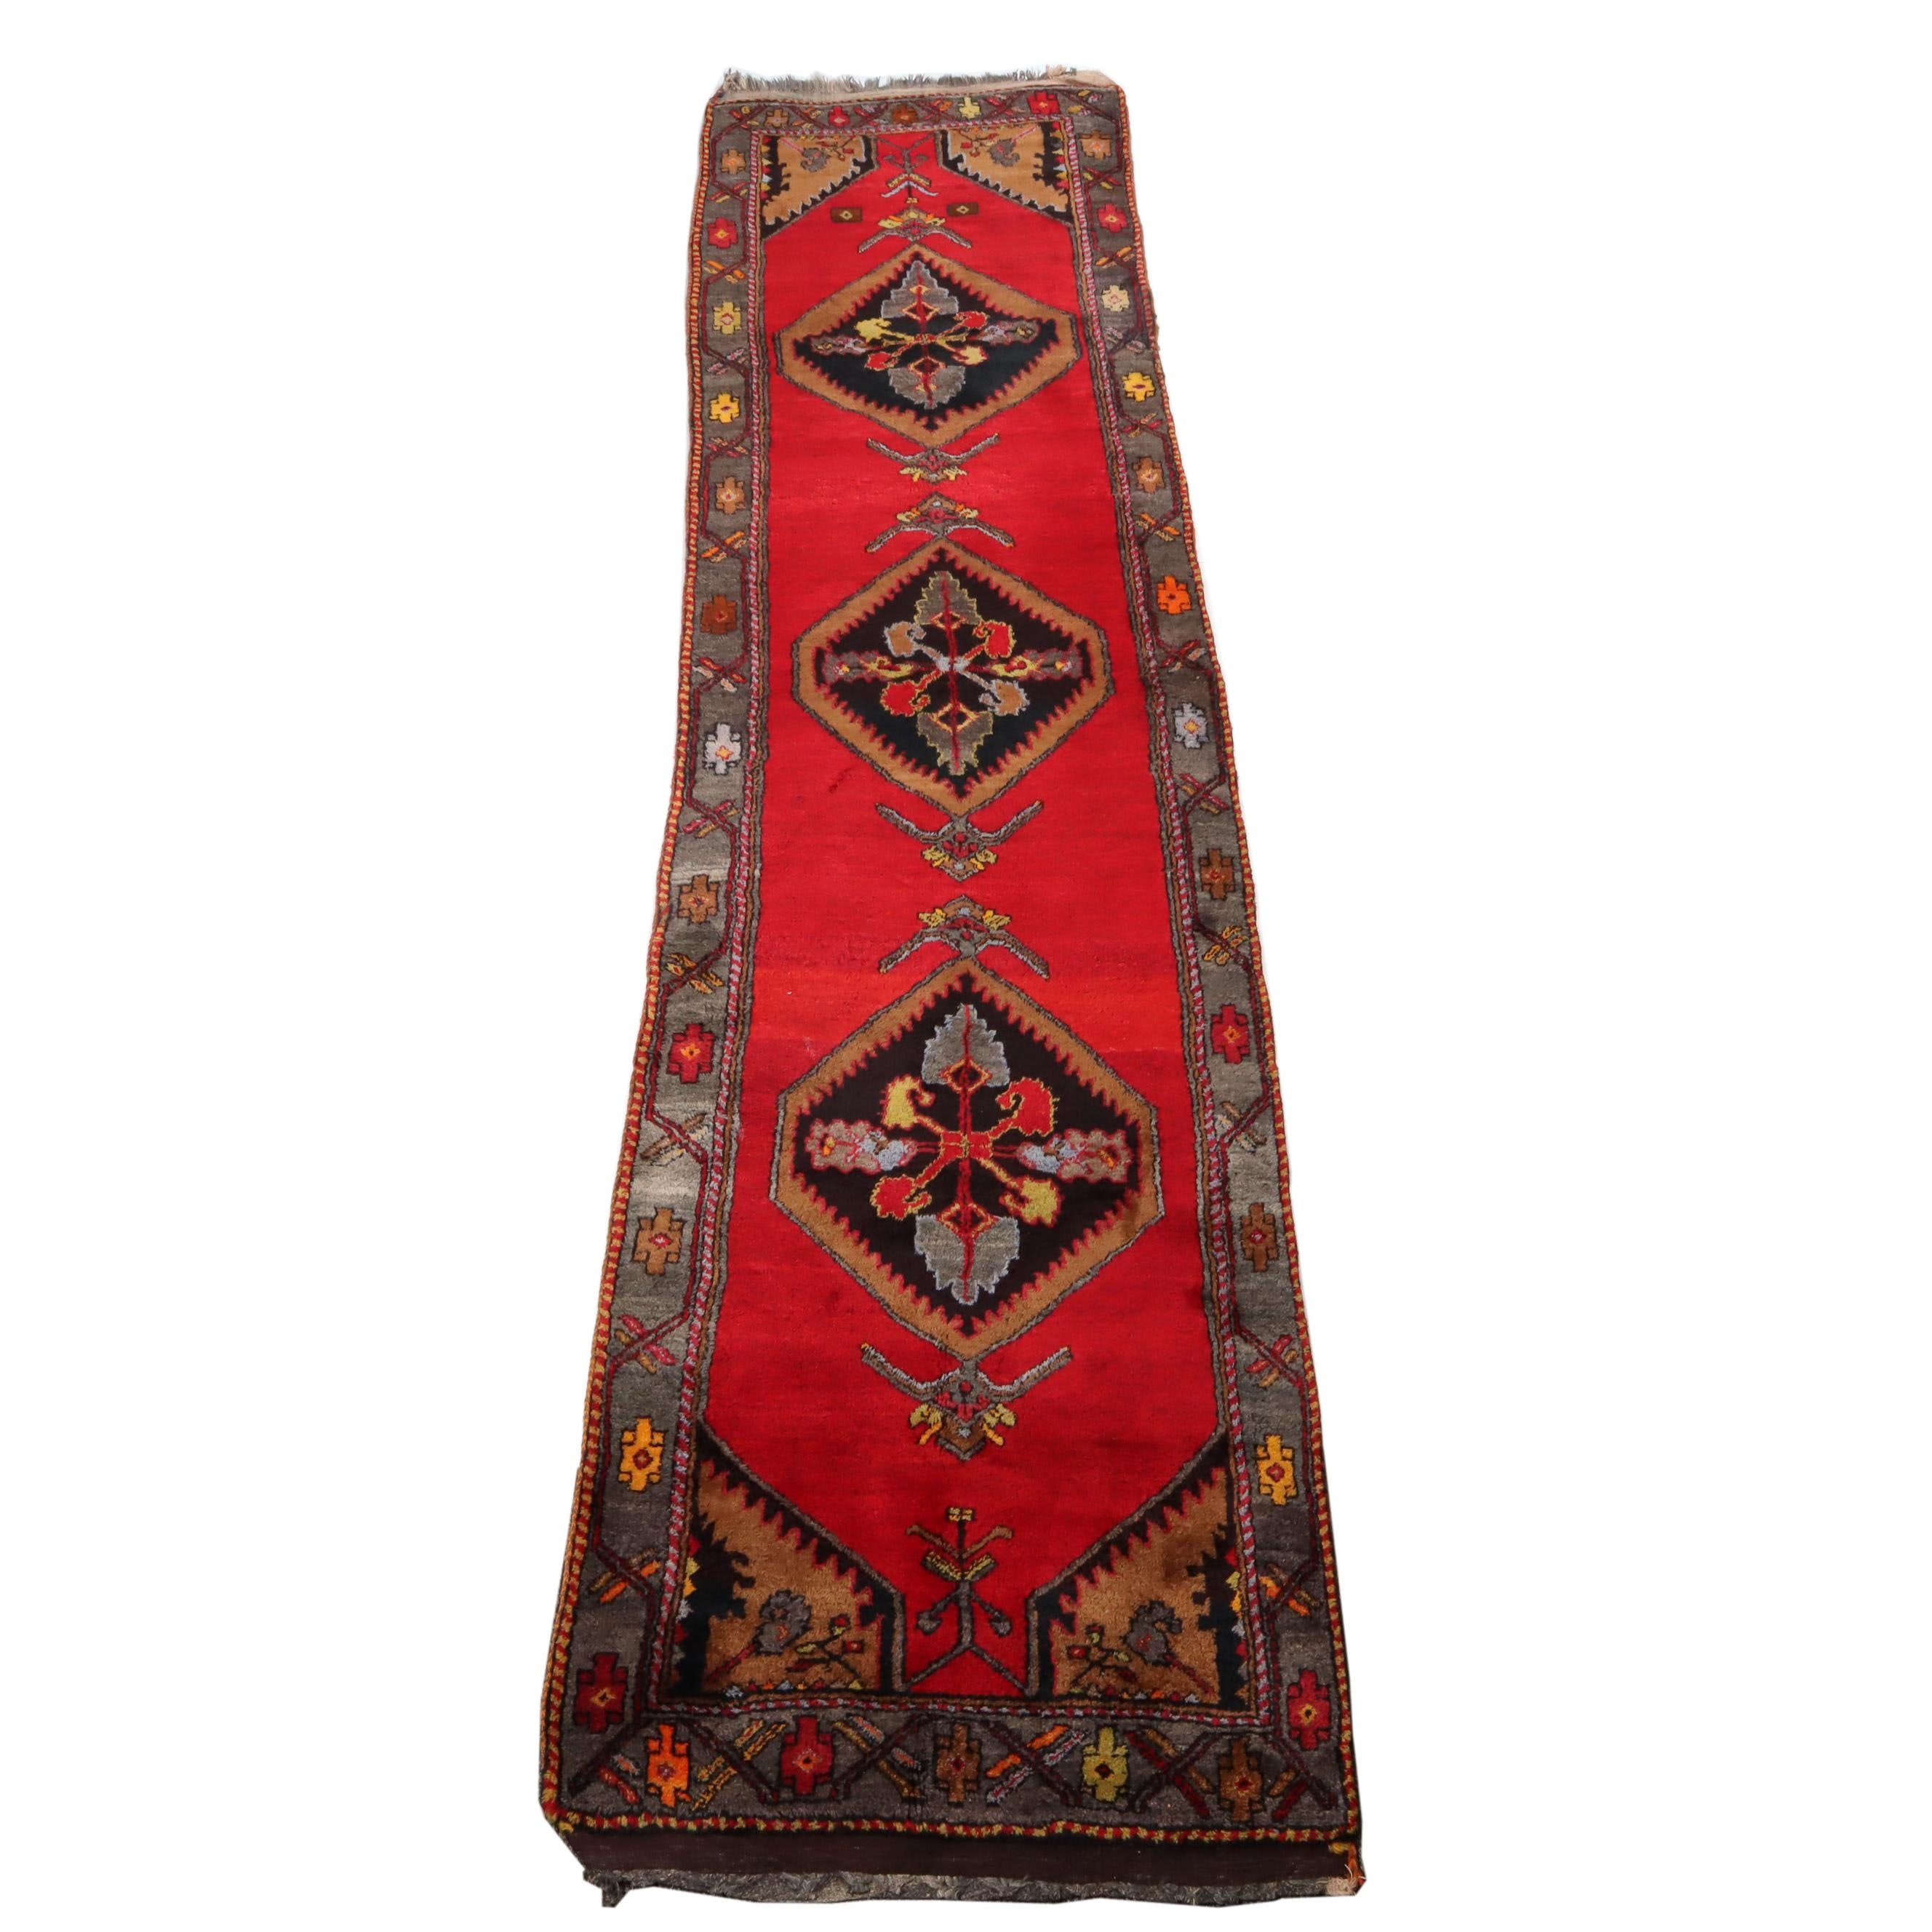 3.3' x 13.2' Hand-Knotted Turkish Oushak Rug Runner, Circa 1940s